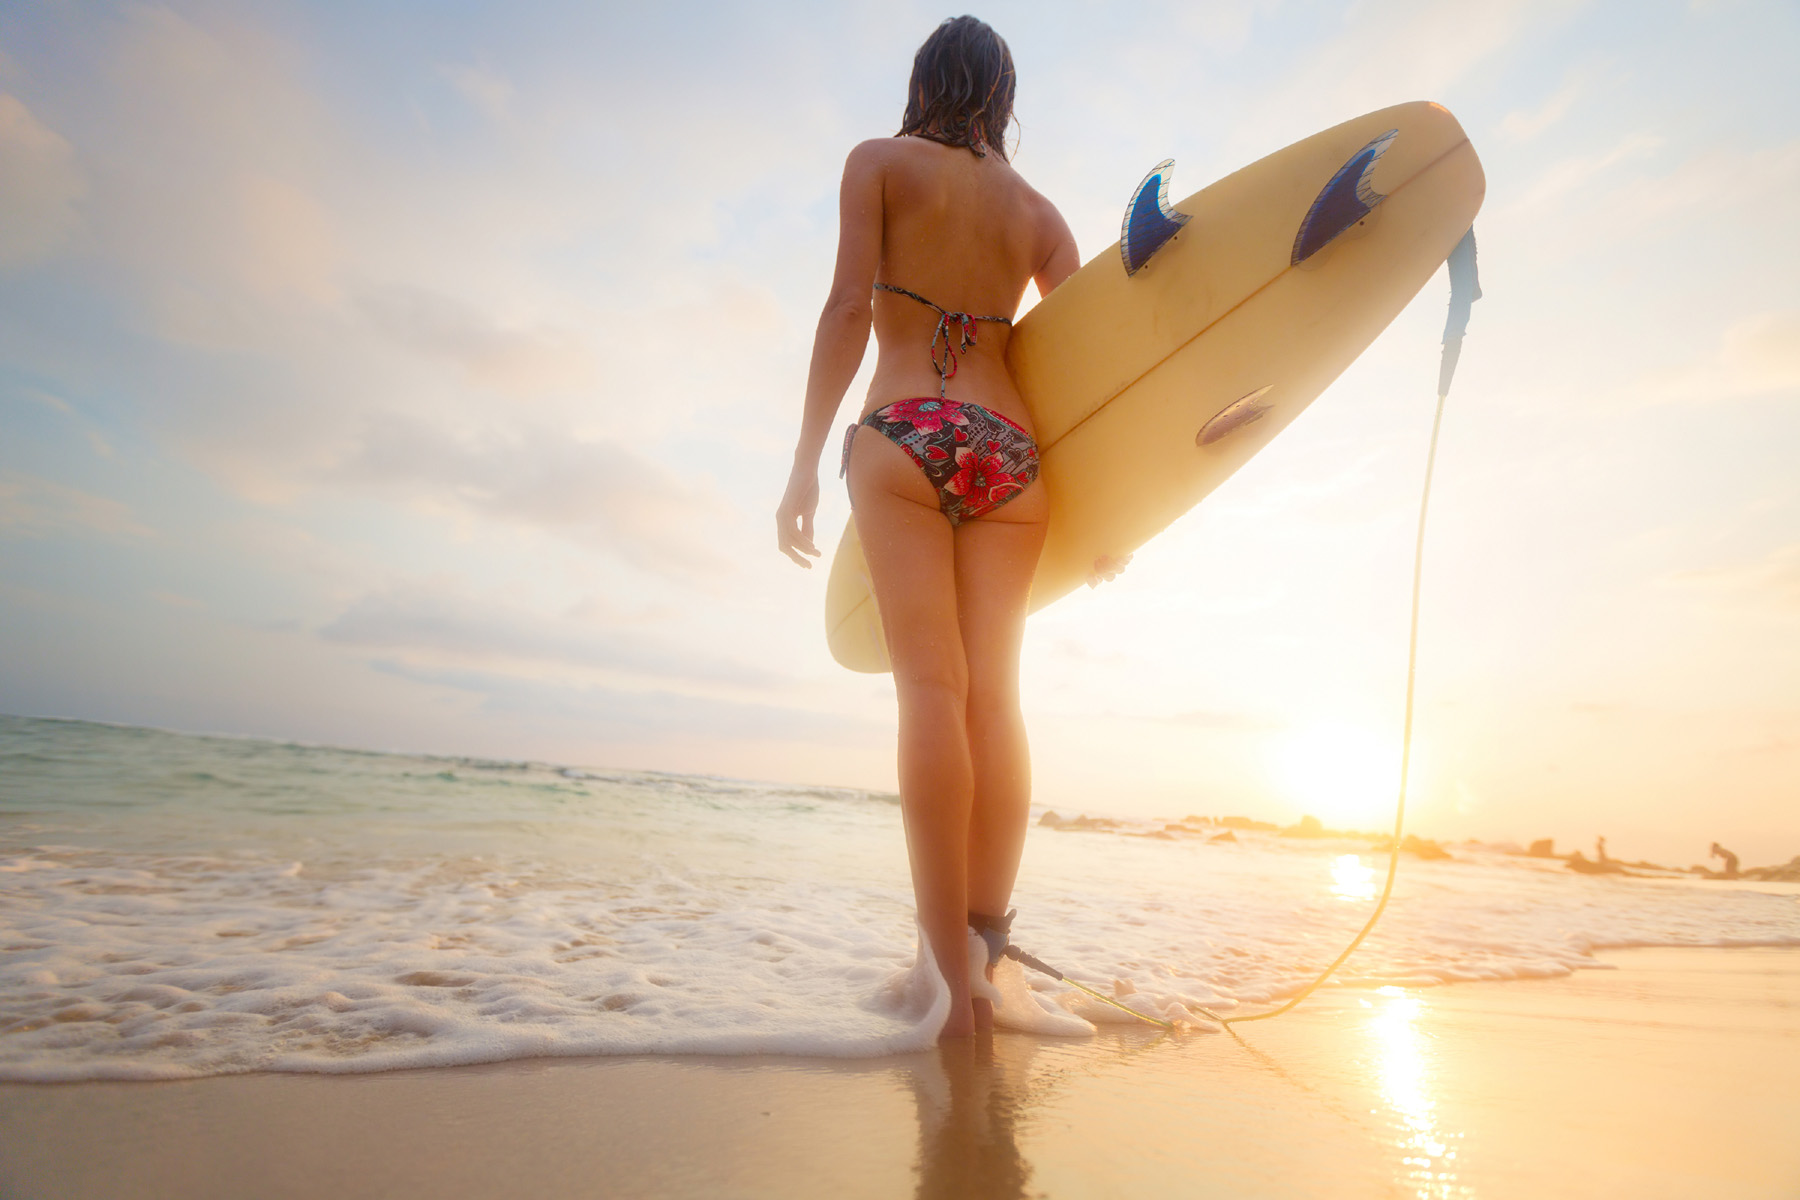 Surfboard in hand beautiful characters 51894